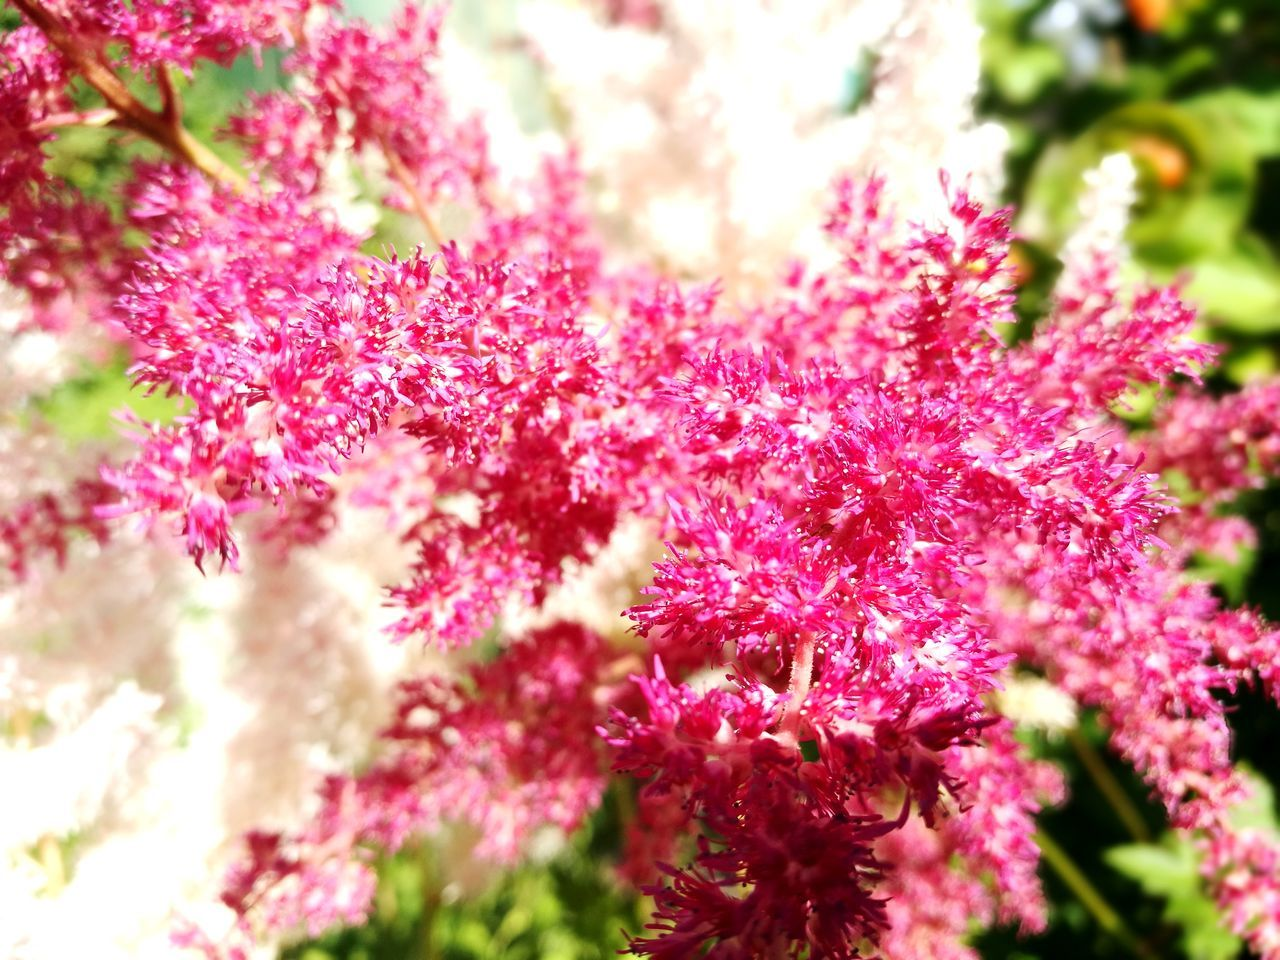 nature, growth, beauty in nature, pink color, flower, no people, selective focus, day, fragility, outdoors, freshness, plant, close-up